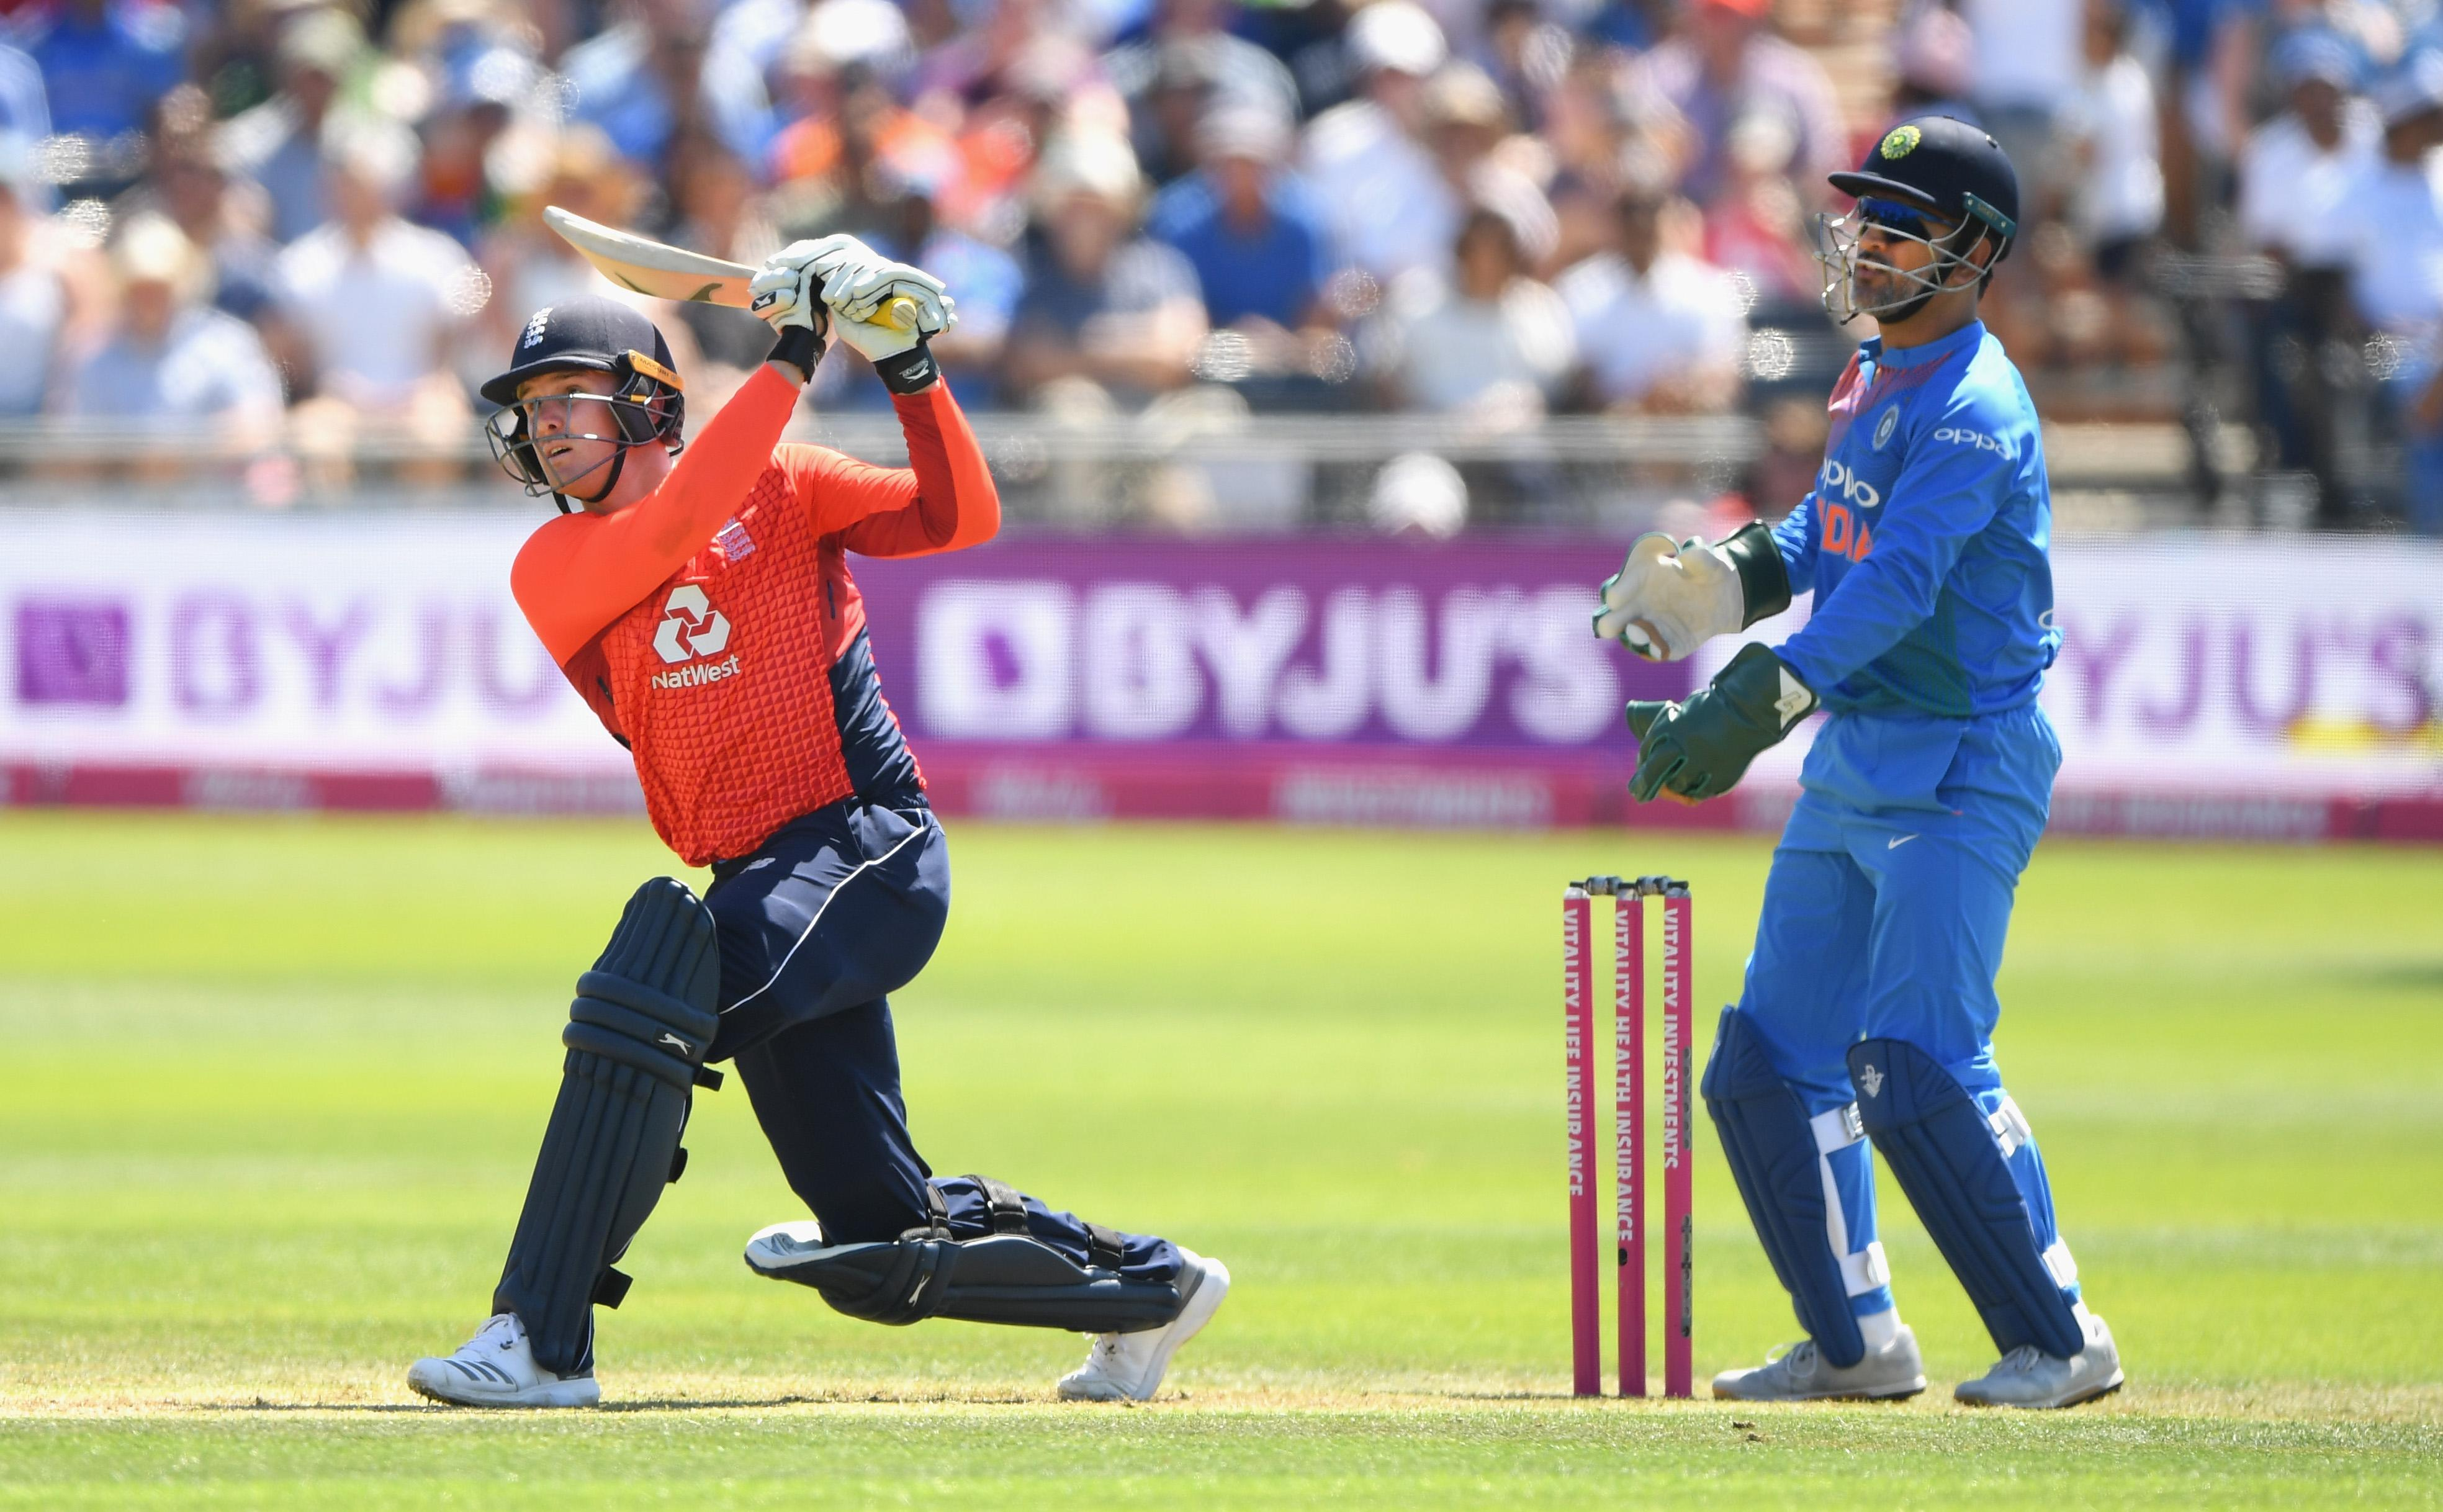 Jason Roy smashed 67 from 31 deliveries to get England off to a flying start